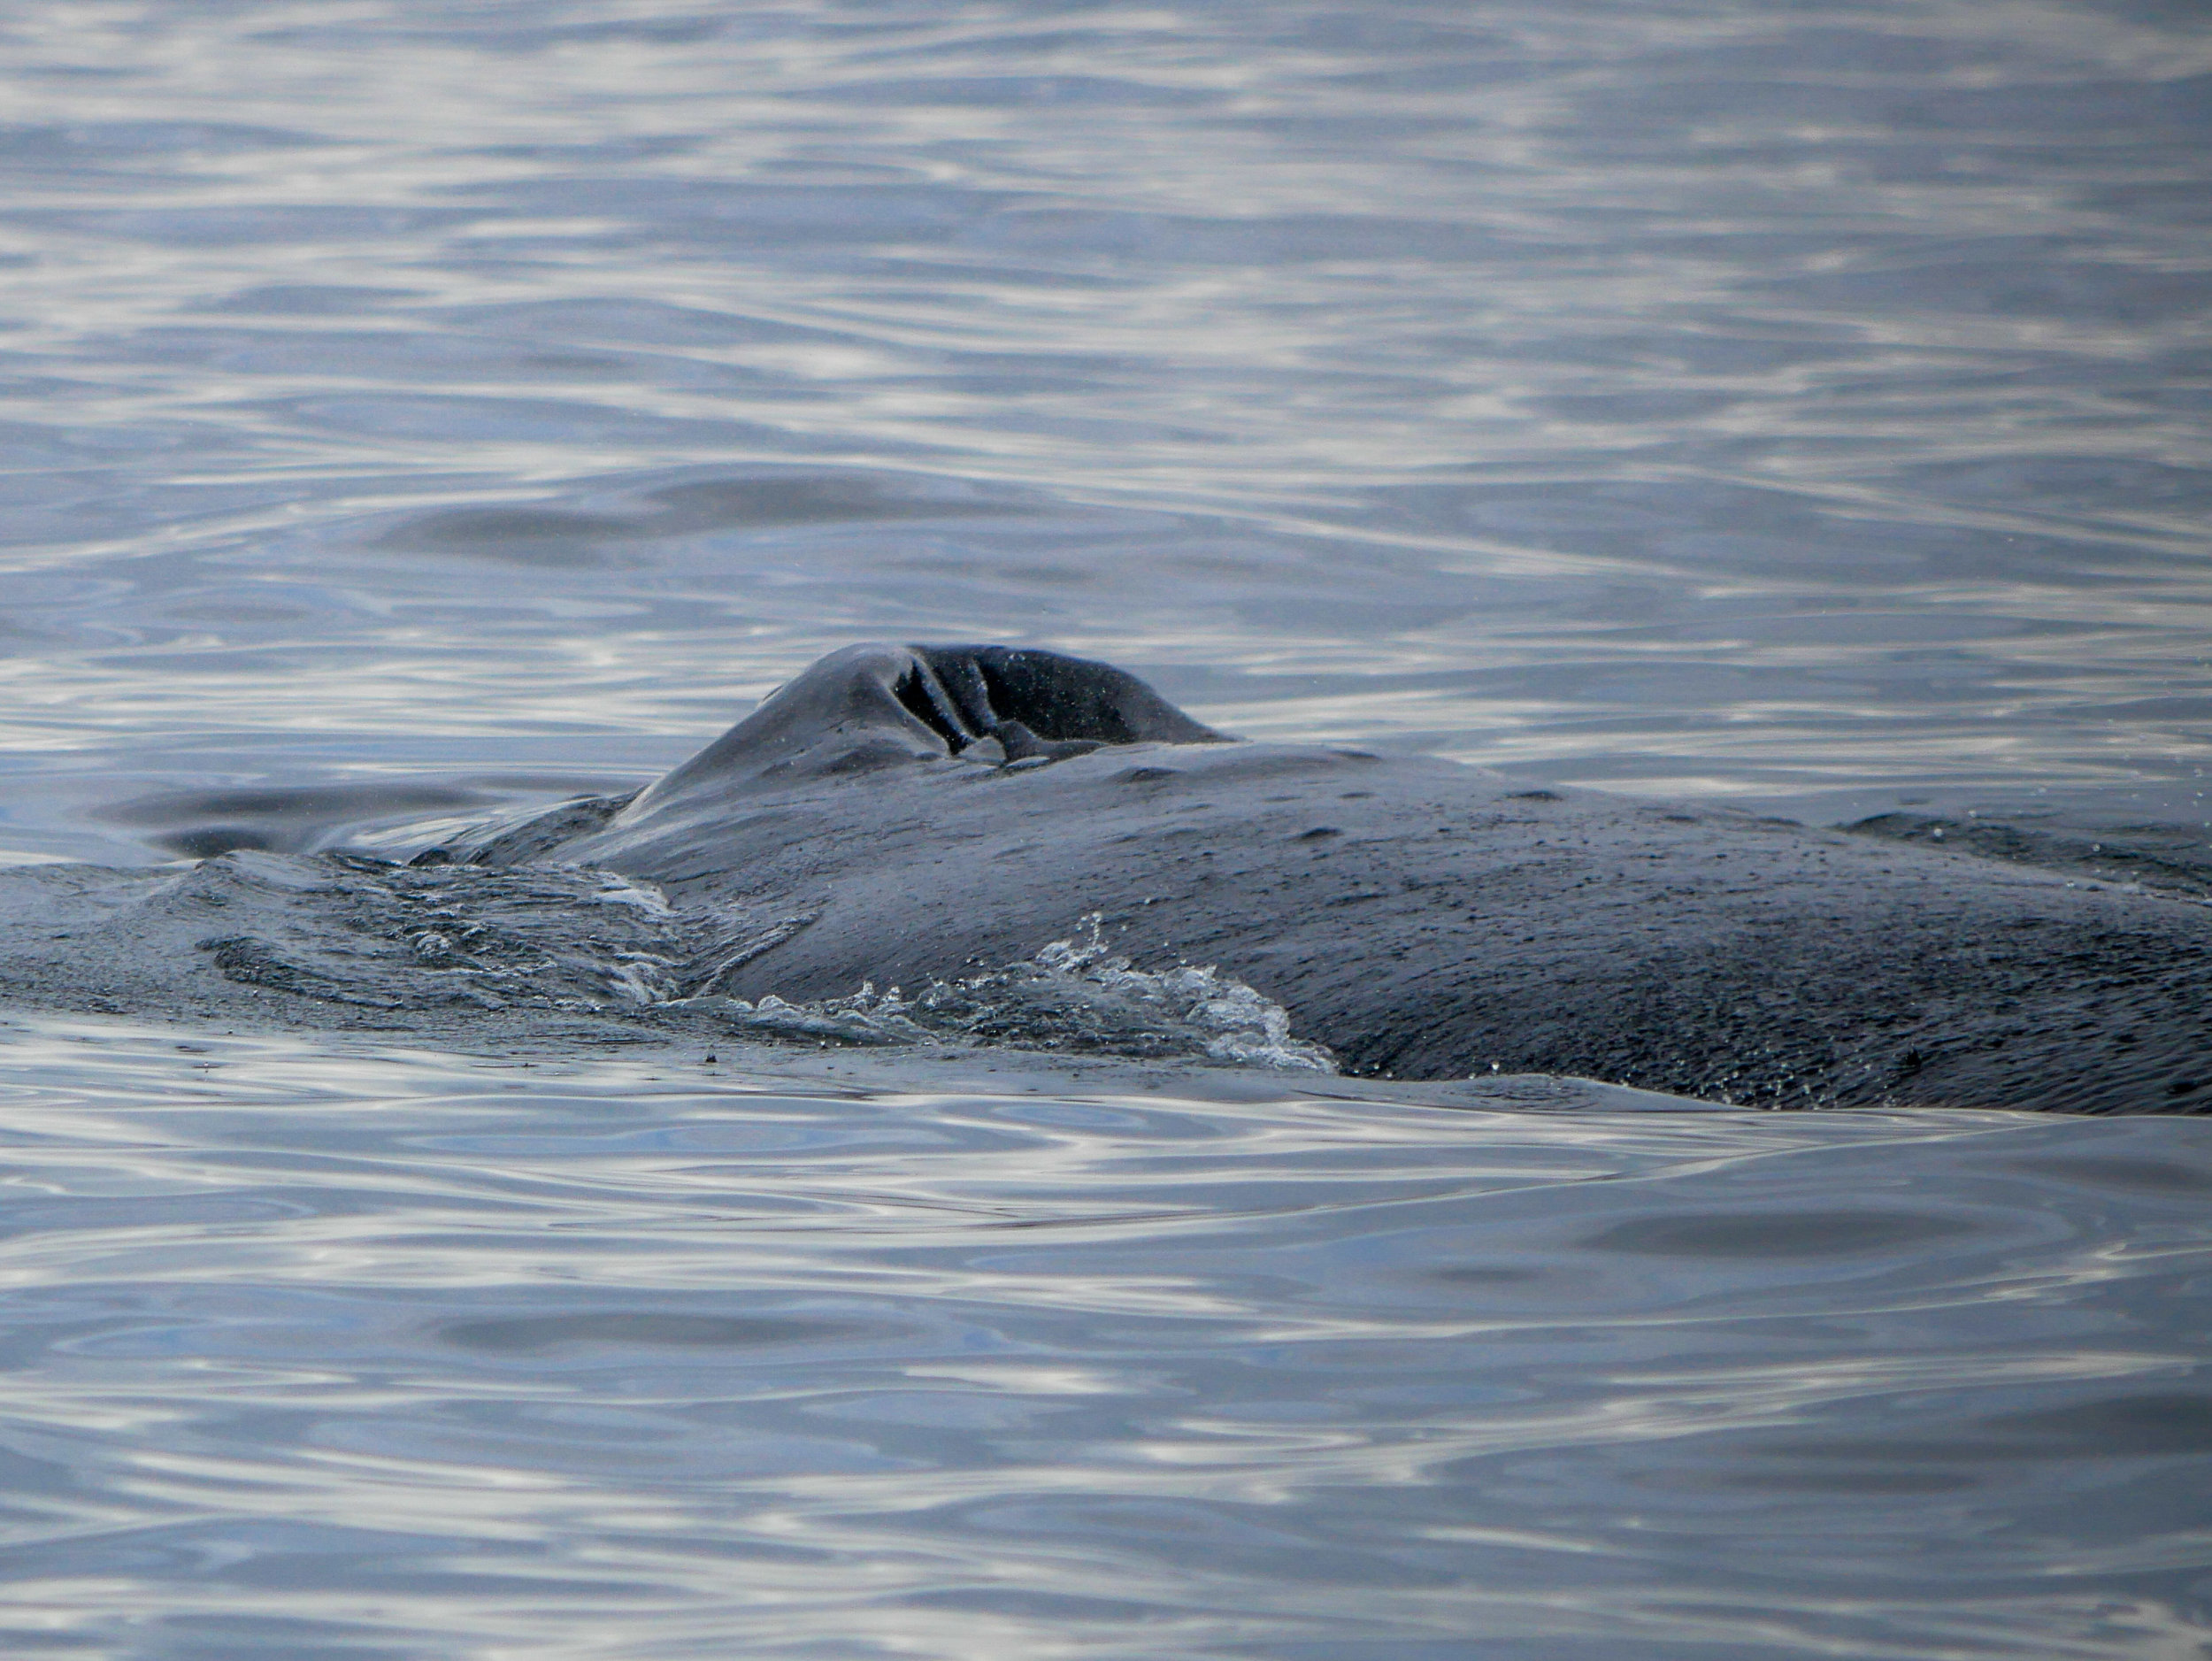 During a close pass we all got an incredible view of the humpback blowholes. Photo by Alanna Vivani - 10:30 tour.